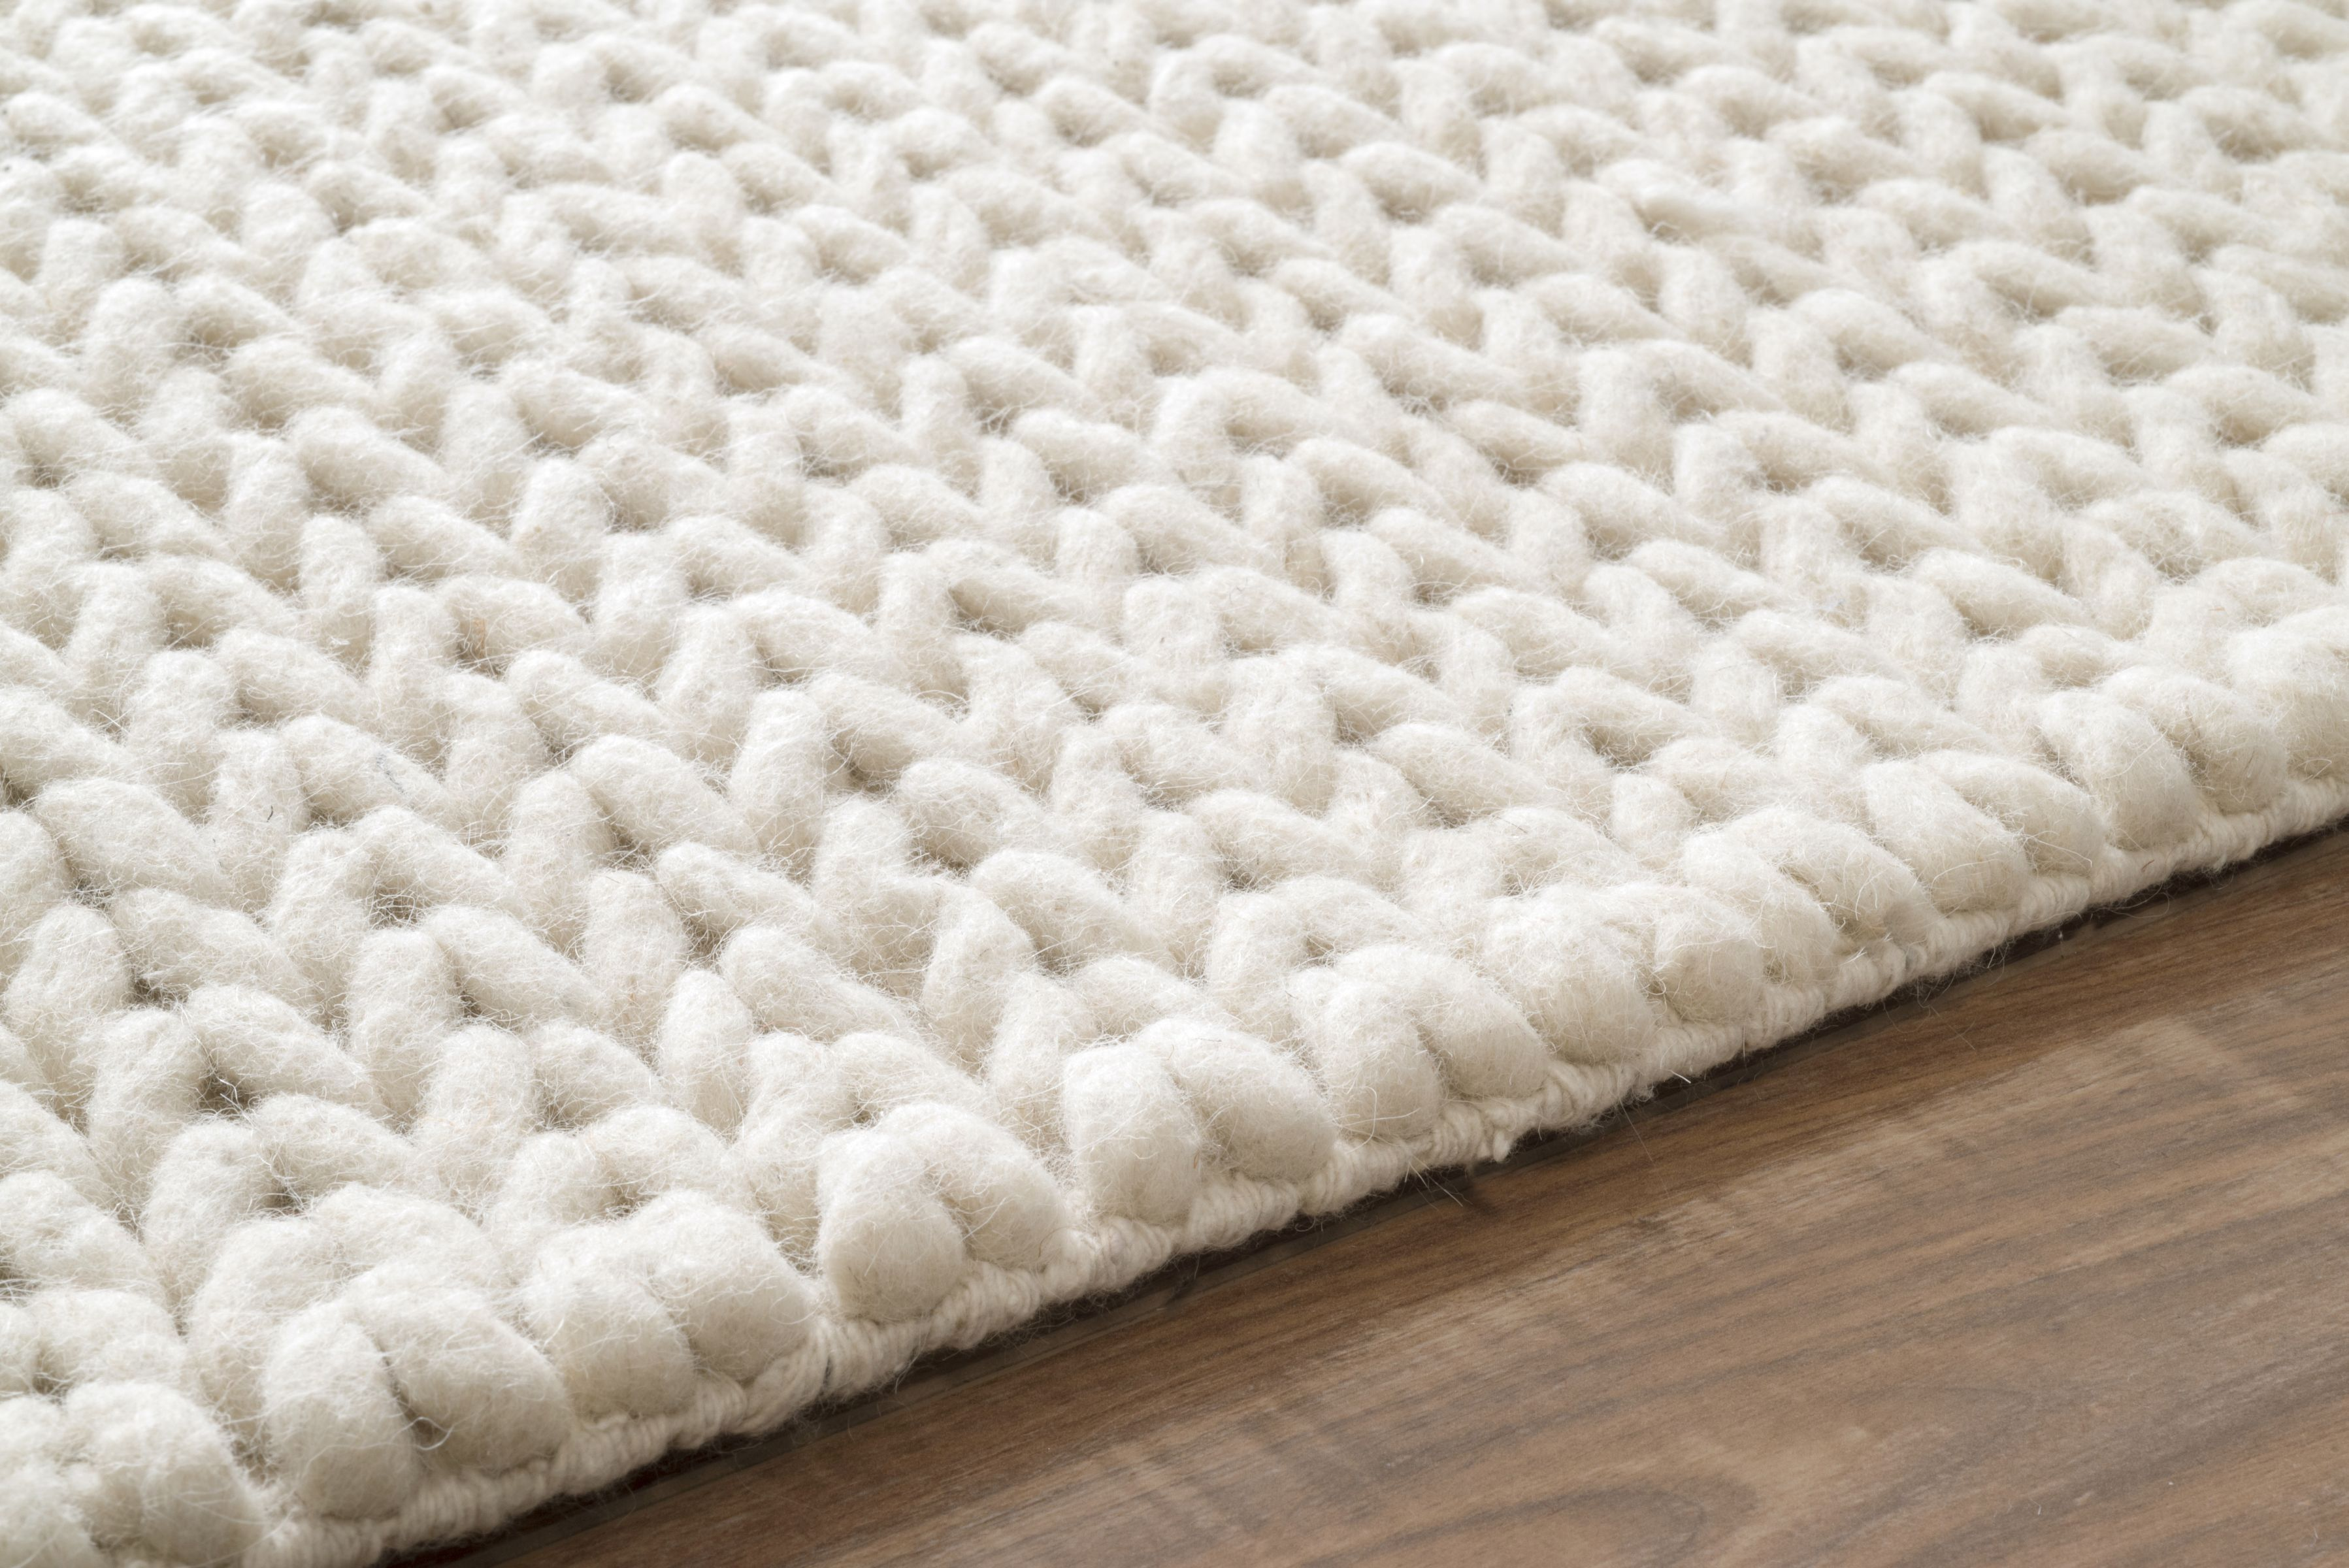 Textures Braided Off White Rug White Rug Rugs In Living Room Master Bedroom Rug